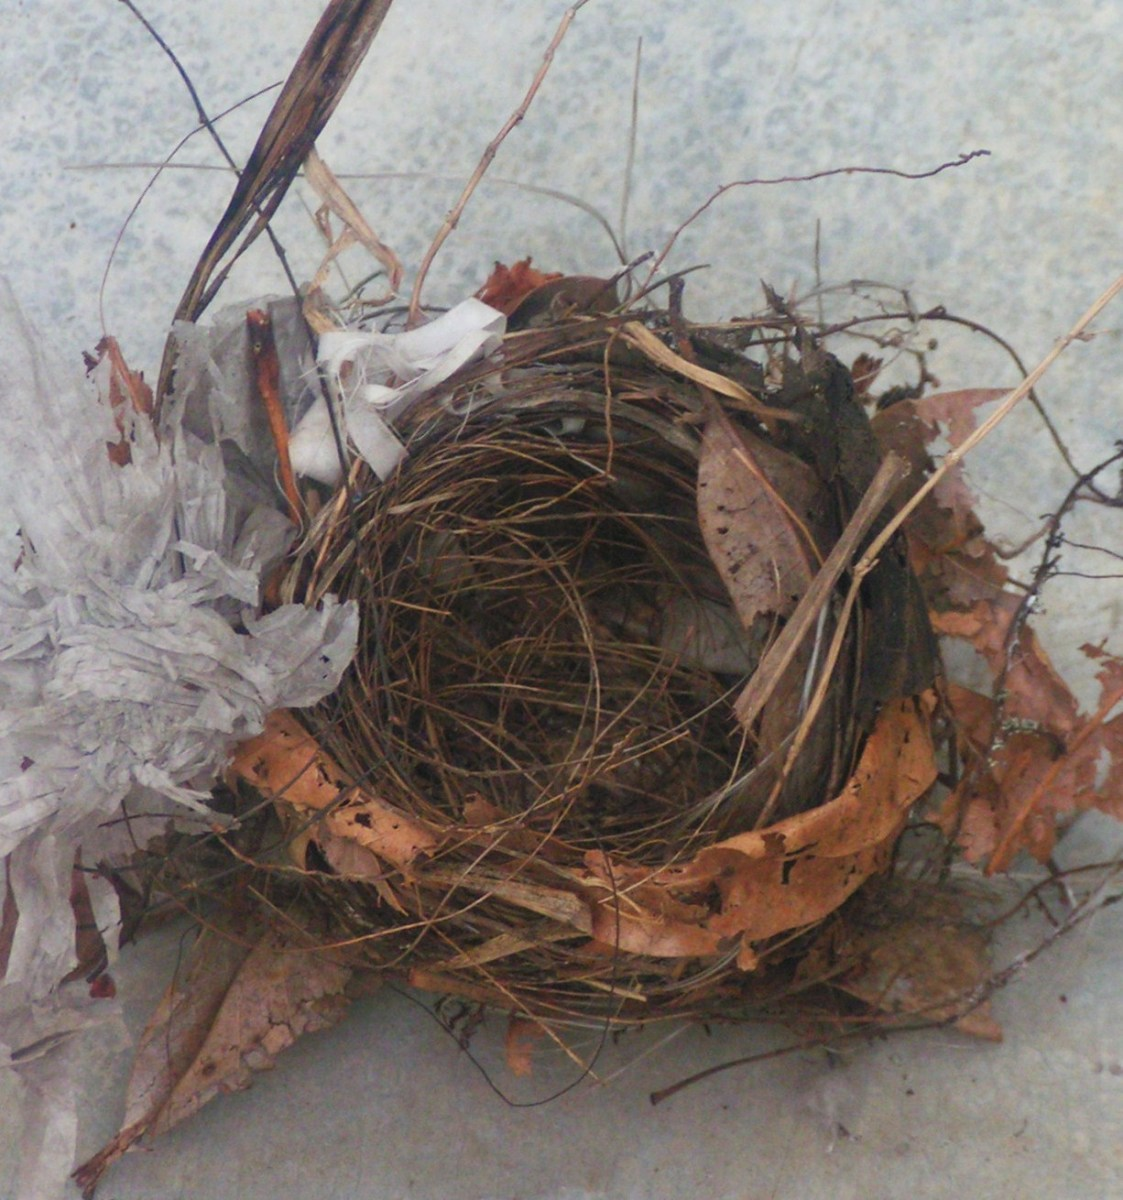 how-to-save-a-fallen-nestling